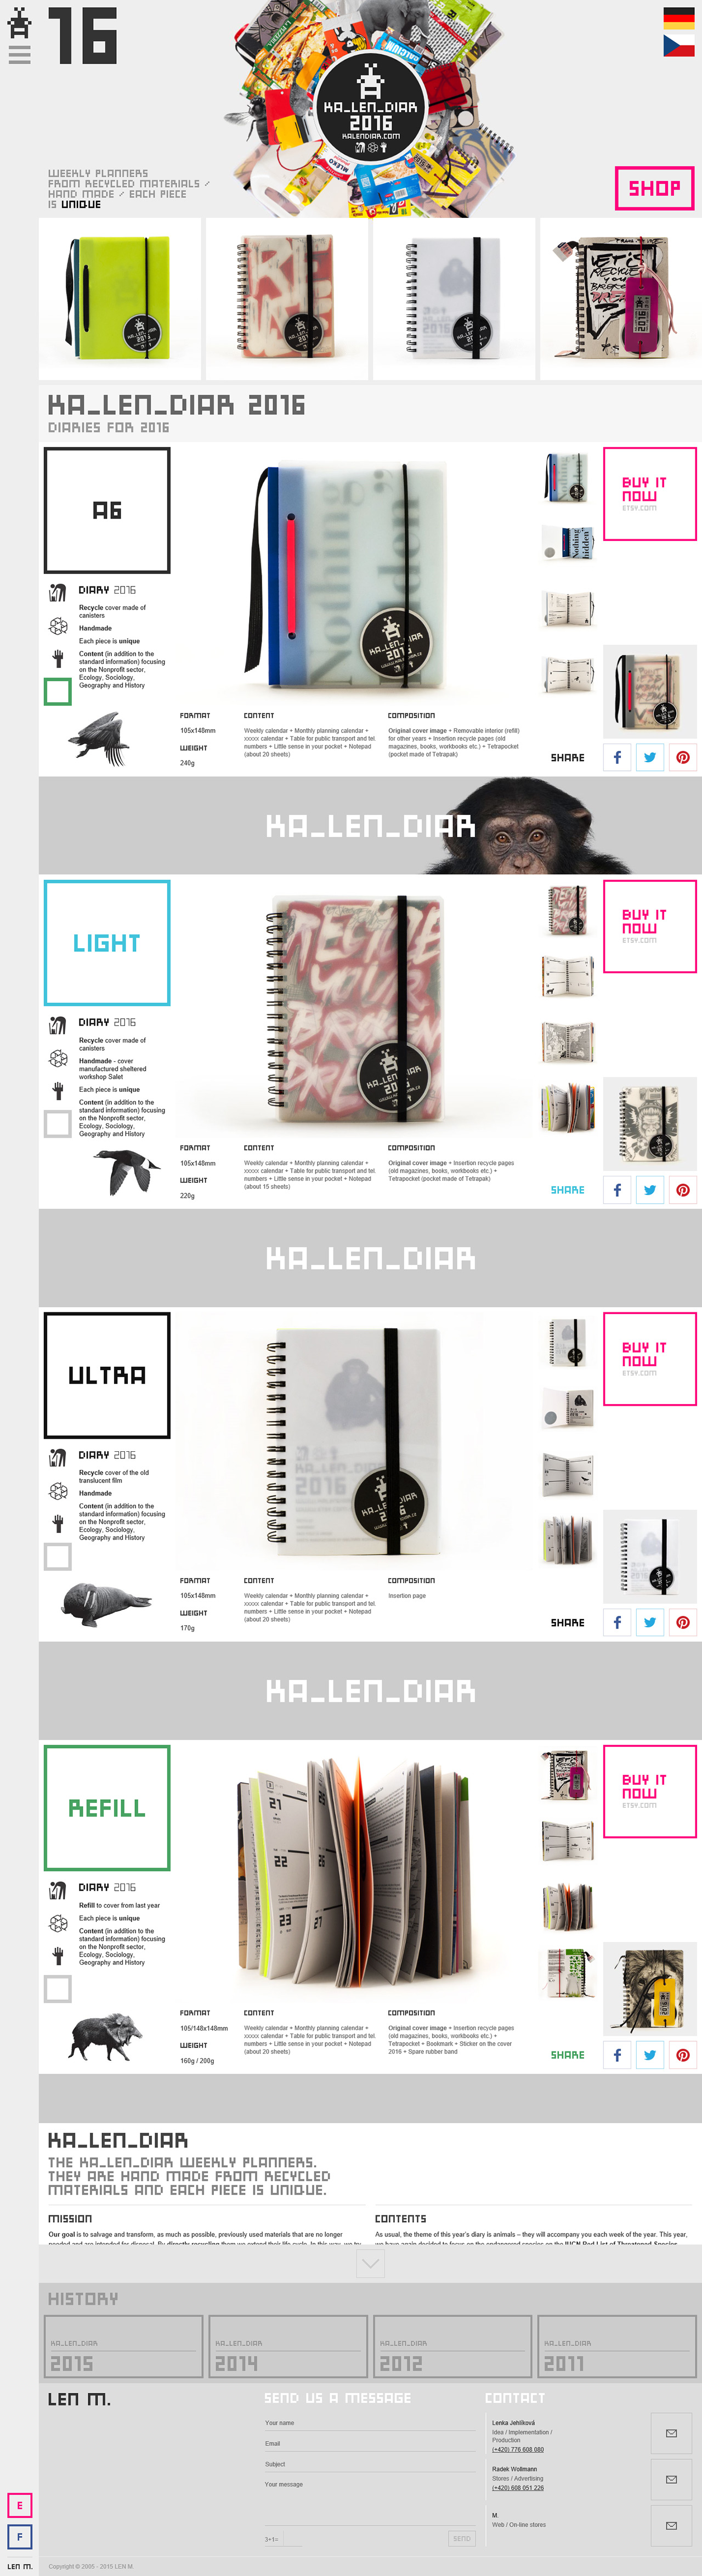 KA_LEN_DIAR – Unique Diaries 2016 Website Screenshot